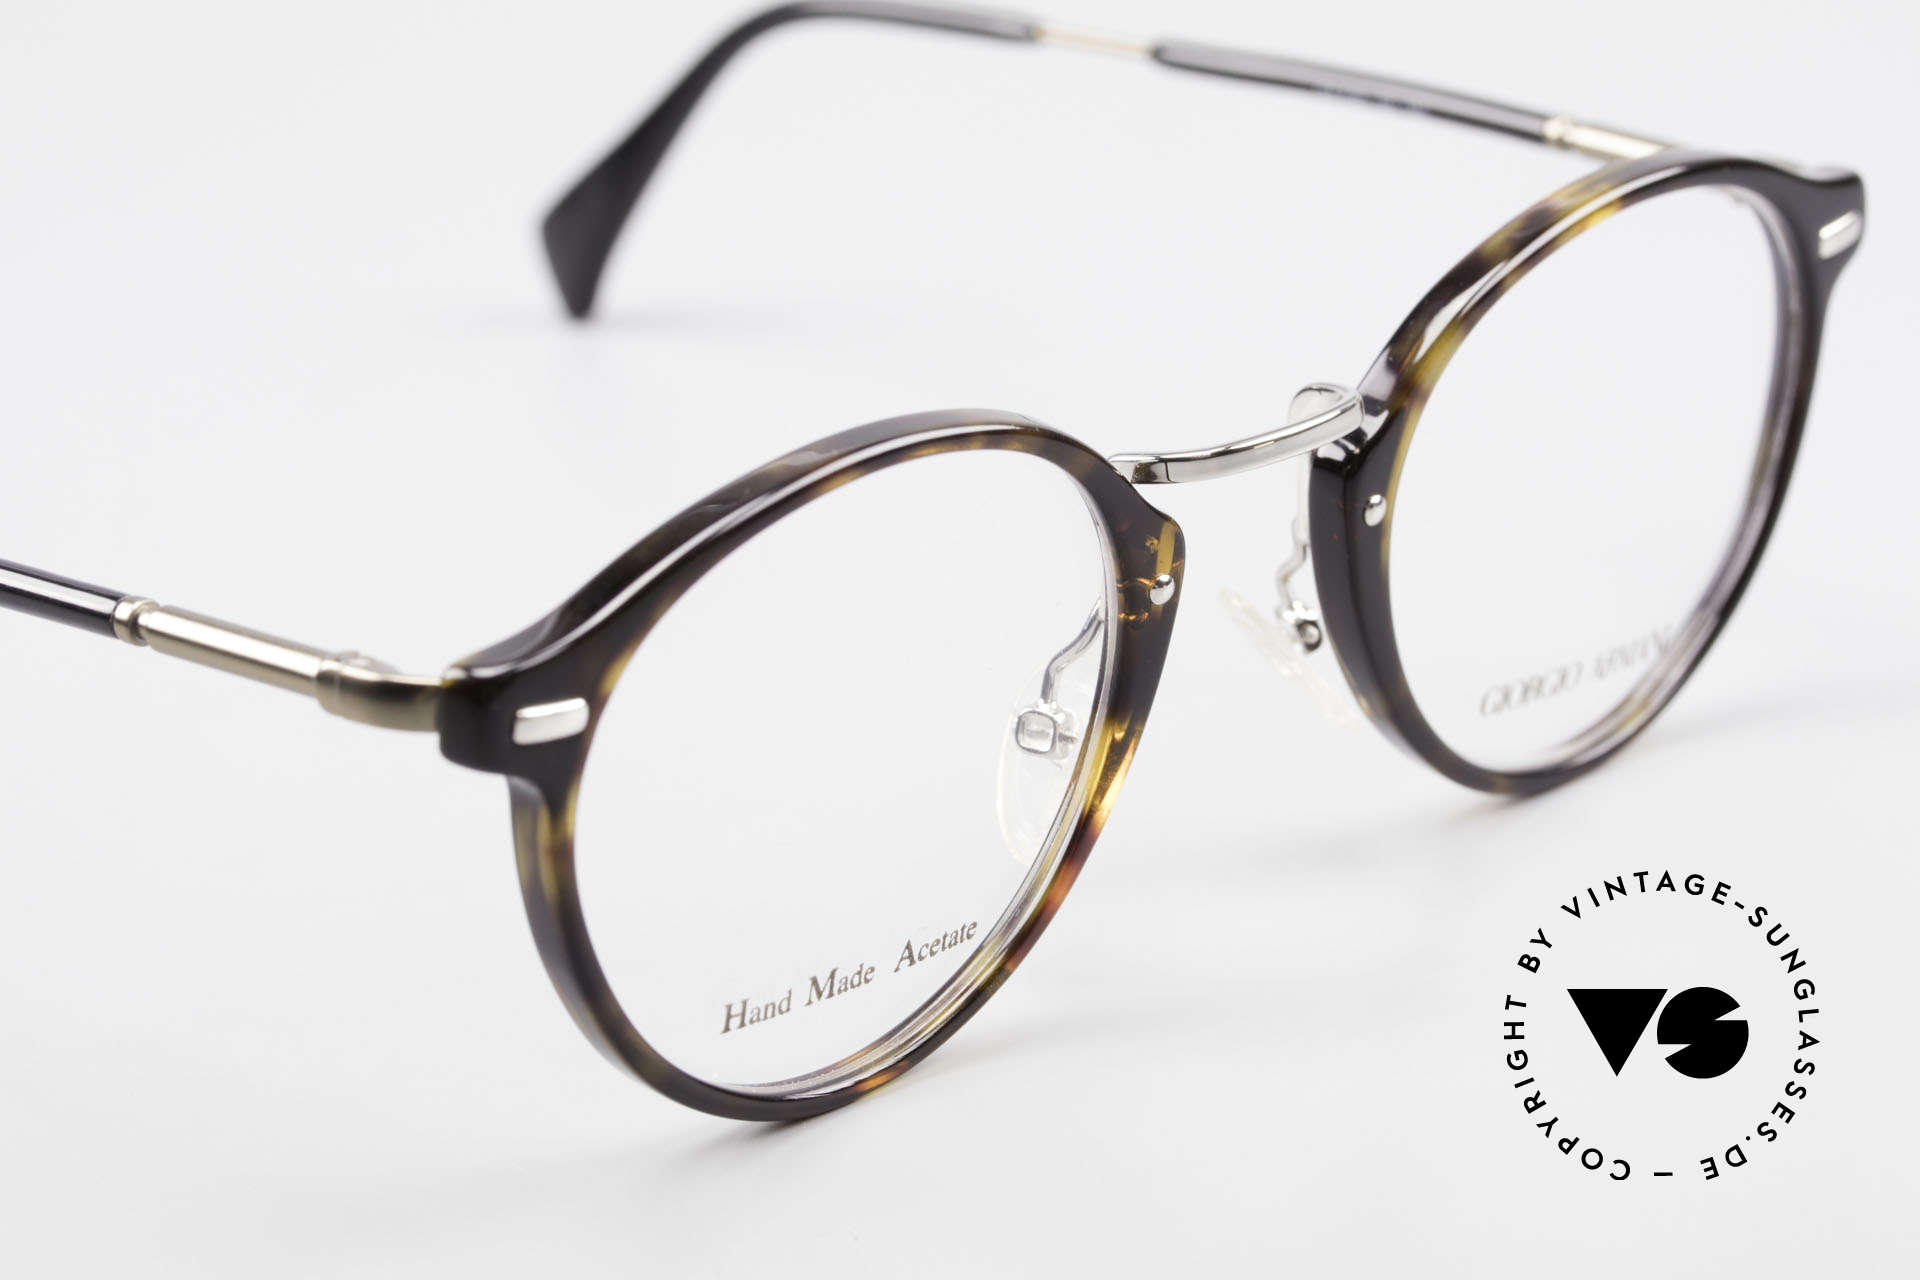 Giorgio Armani 828 Round Panto Eyeglass-Frame, with flexible spring hinges for a 1st class comfort, Made for Men and Women